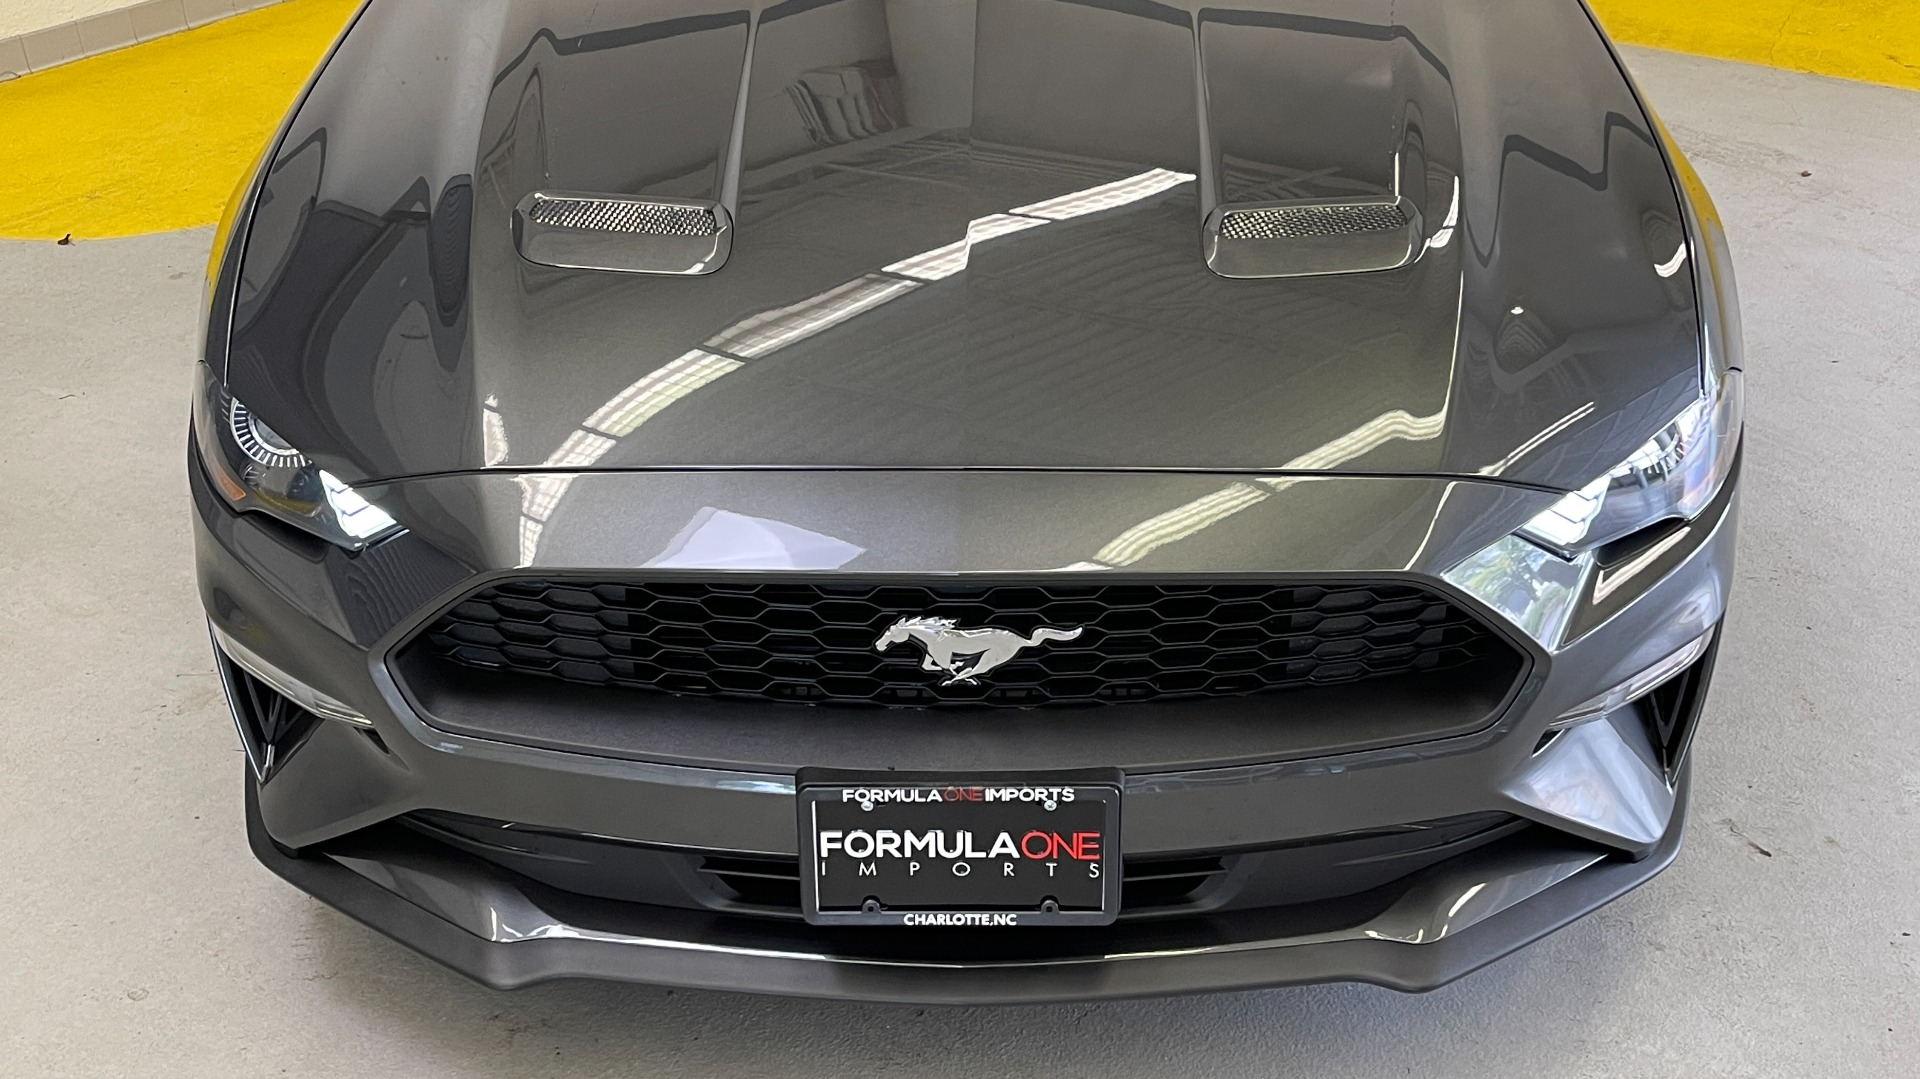 Used 2019 Ford MUSTANG ECOBOOST 2.3L / 10-SPD AUTO / SYNC3 8INCH SCREEN / TRACK APPS / REARVIEW for sale $31,795 at Formula Imports in Charlotte NC 28227 13